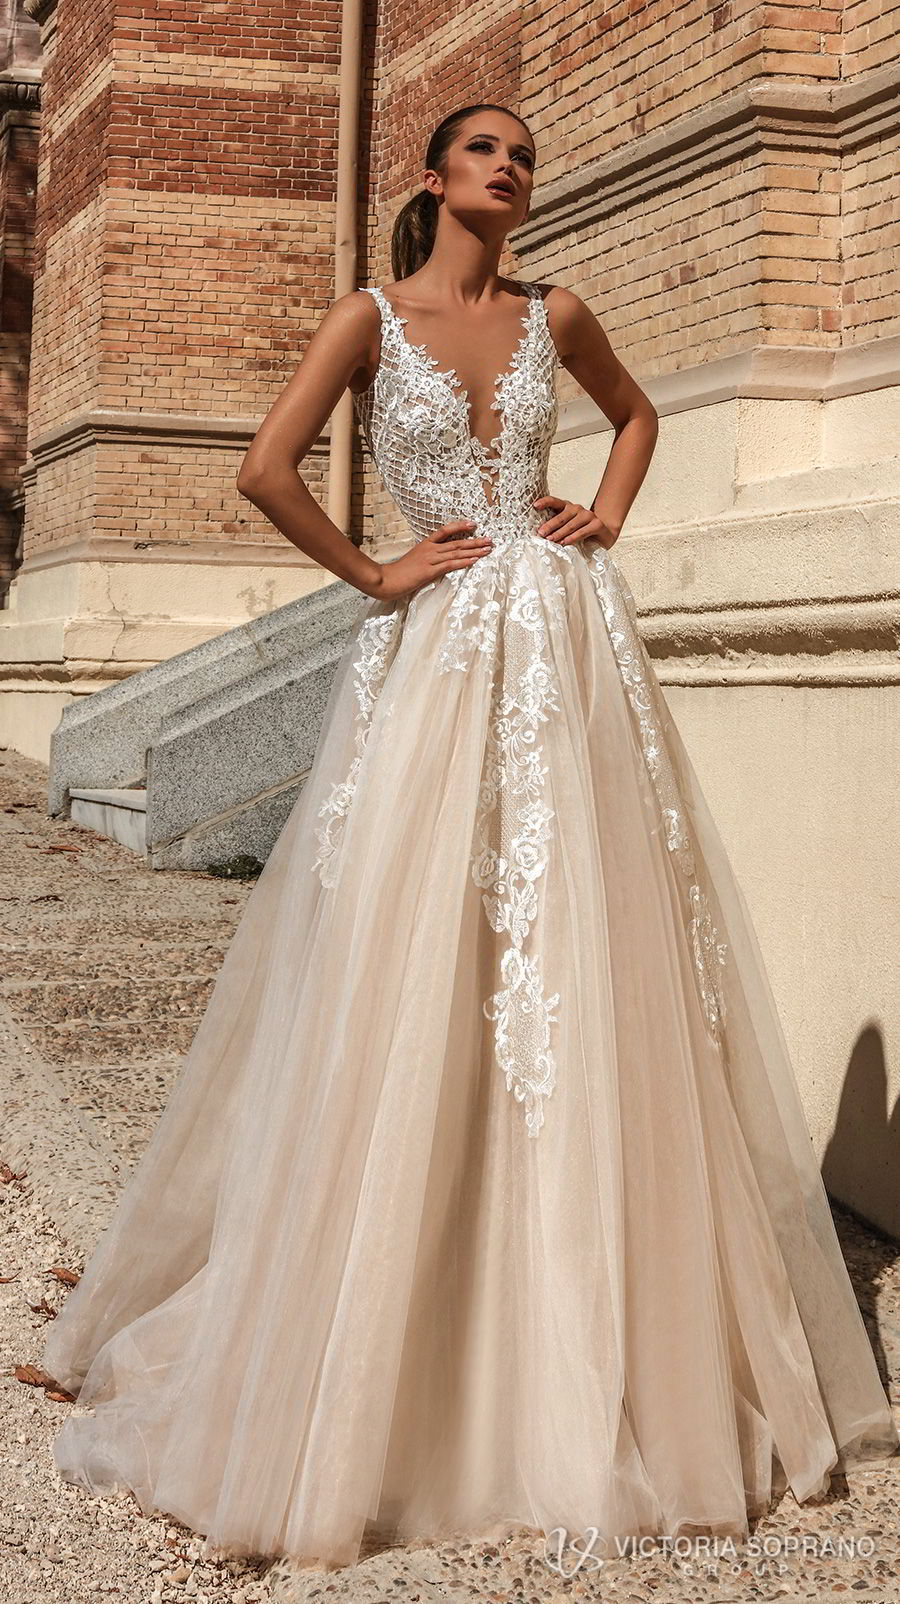 Victoria soprano 2018 wedding dresses the one bridal for Champagne color wedding dresses